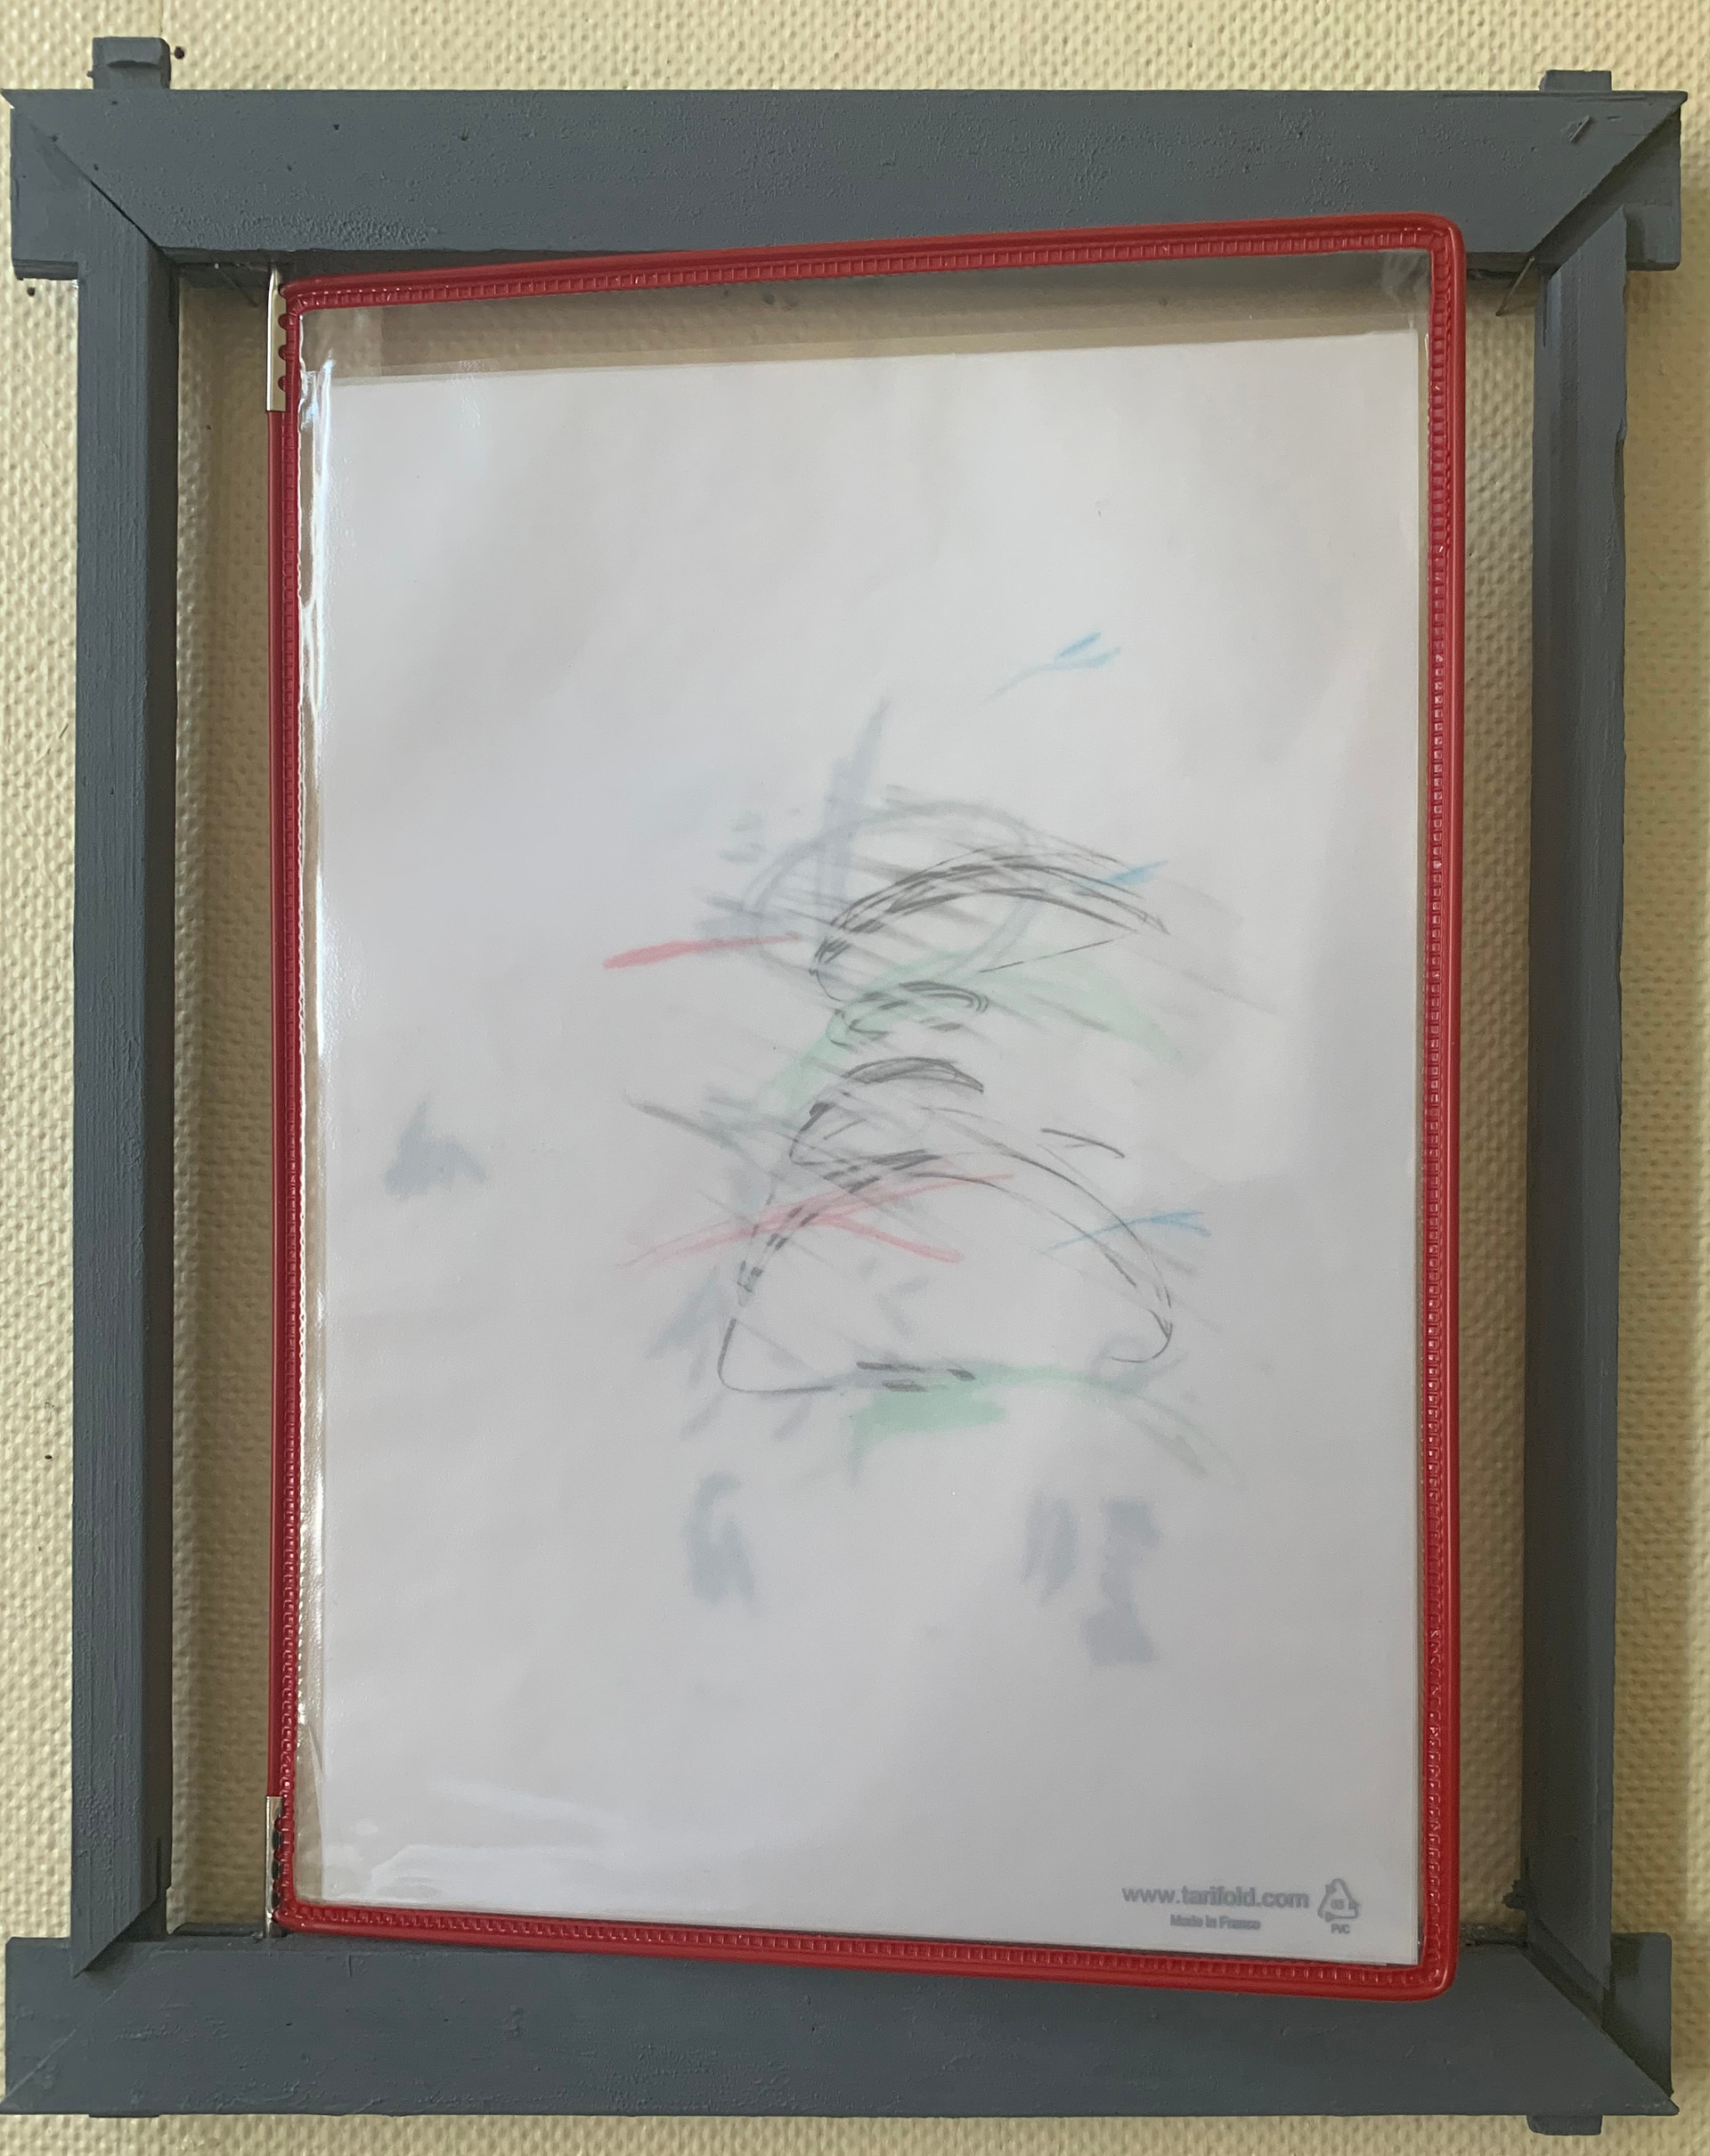 N.Lichtig, Un-Unframed Series (wood, pencil on paper, transparent film, sometimes: pebble) and (silkscreen print on fabric, glass, oil and acrylic on canvas, variable sizes). 2012—ongoing. Merkel Collection, Germany